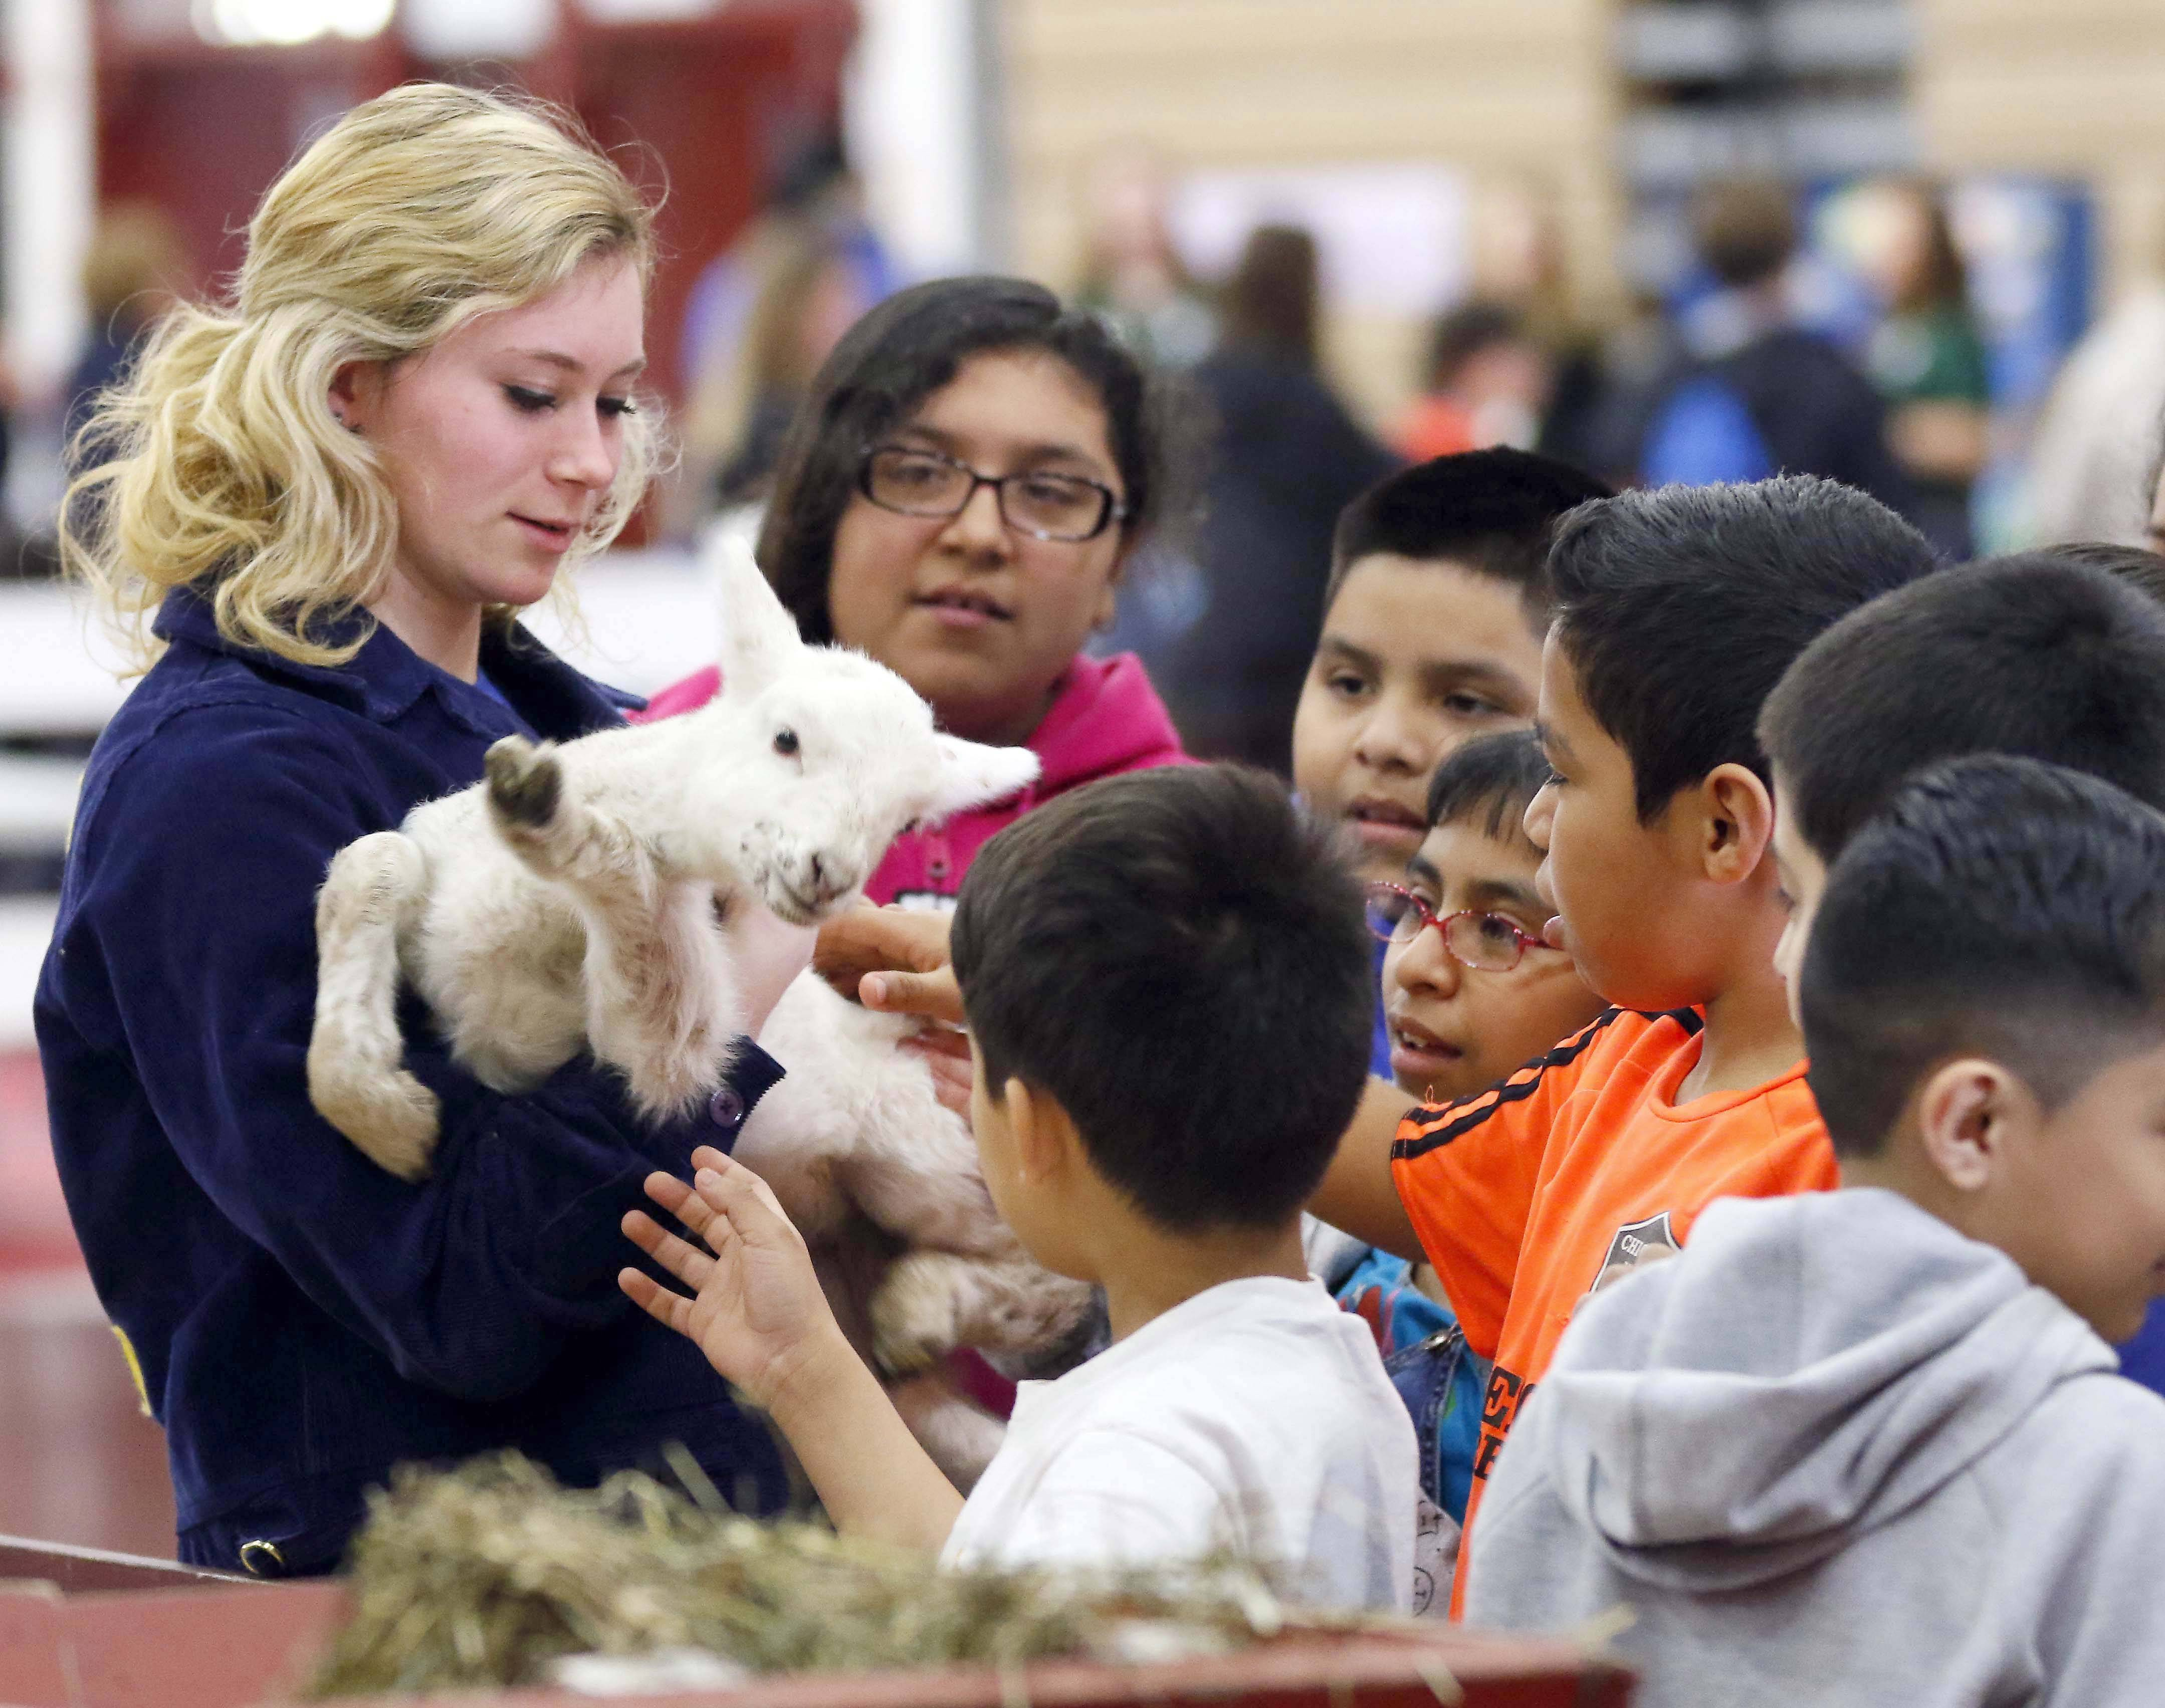 Jenna Harvell, 18, of Maple Park and Kaneland High School holds a three-day-old baby lamb for students from Hillcrest Elementary School in Elgin to see Tuesday. The Kane County Farm Bureau Ag Literacy Program brought fourth grade students and their teachers from Kane County elementary schools to Mooseheart to learn about agriculture. Students heard from farmers and presenters from many facets of the agriculture industry. Harvell said that she grew up on a farm and has been volunteering at this event for the last three years.